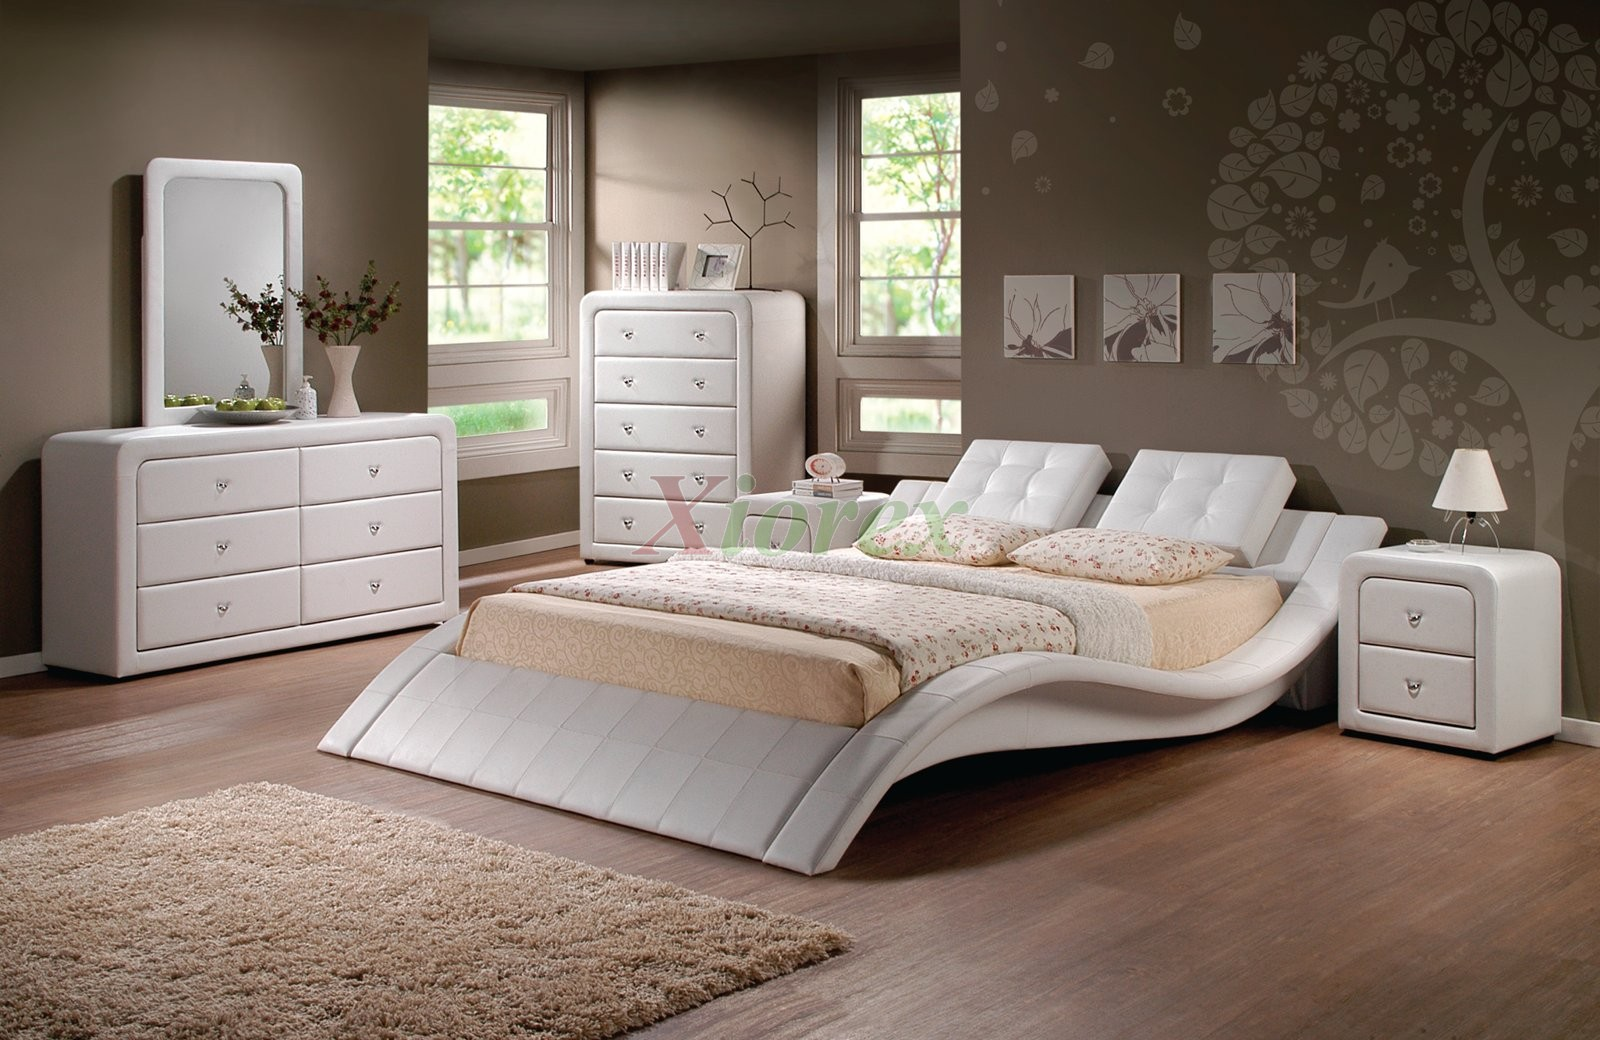 walker alex queen furniture sers bedroom vegas las master set sets king en